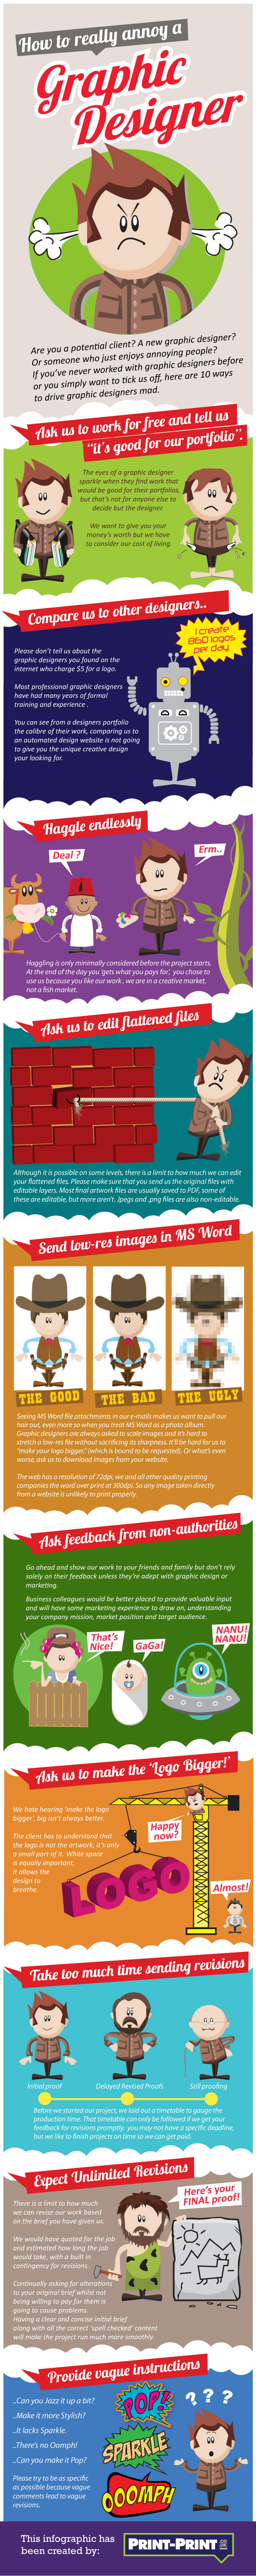 How to really annoy a graphic designer (Infographic)